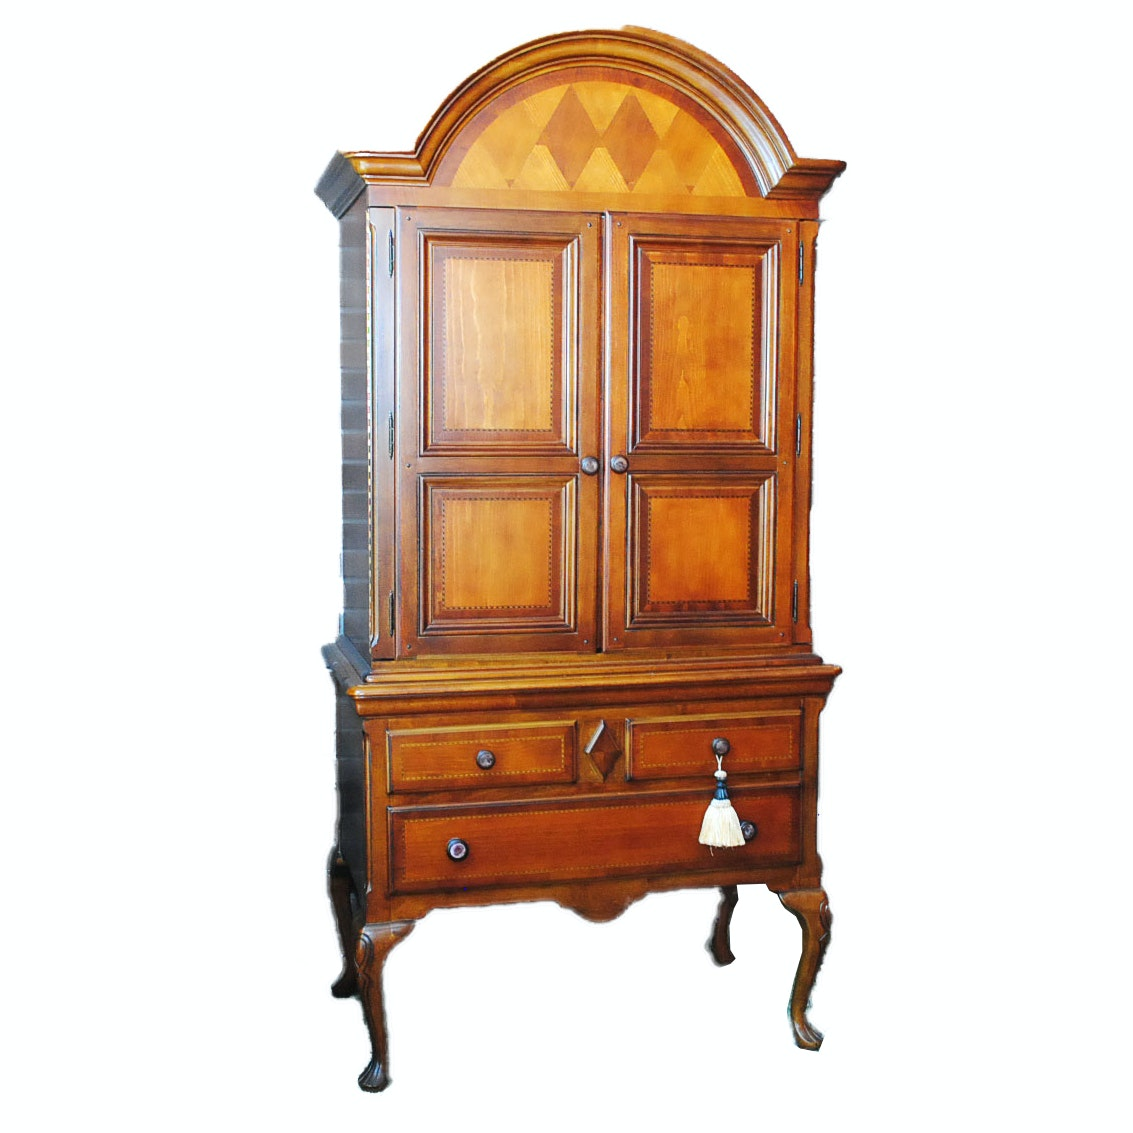 Queen Anne Style Armoire by Alexander Julian